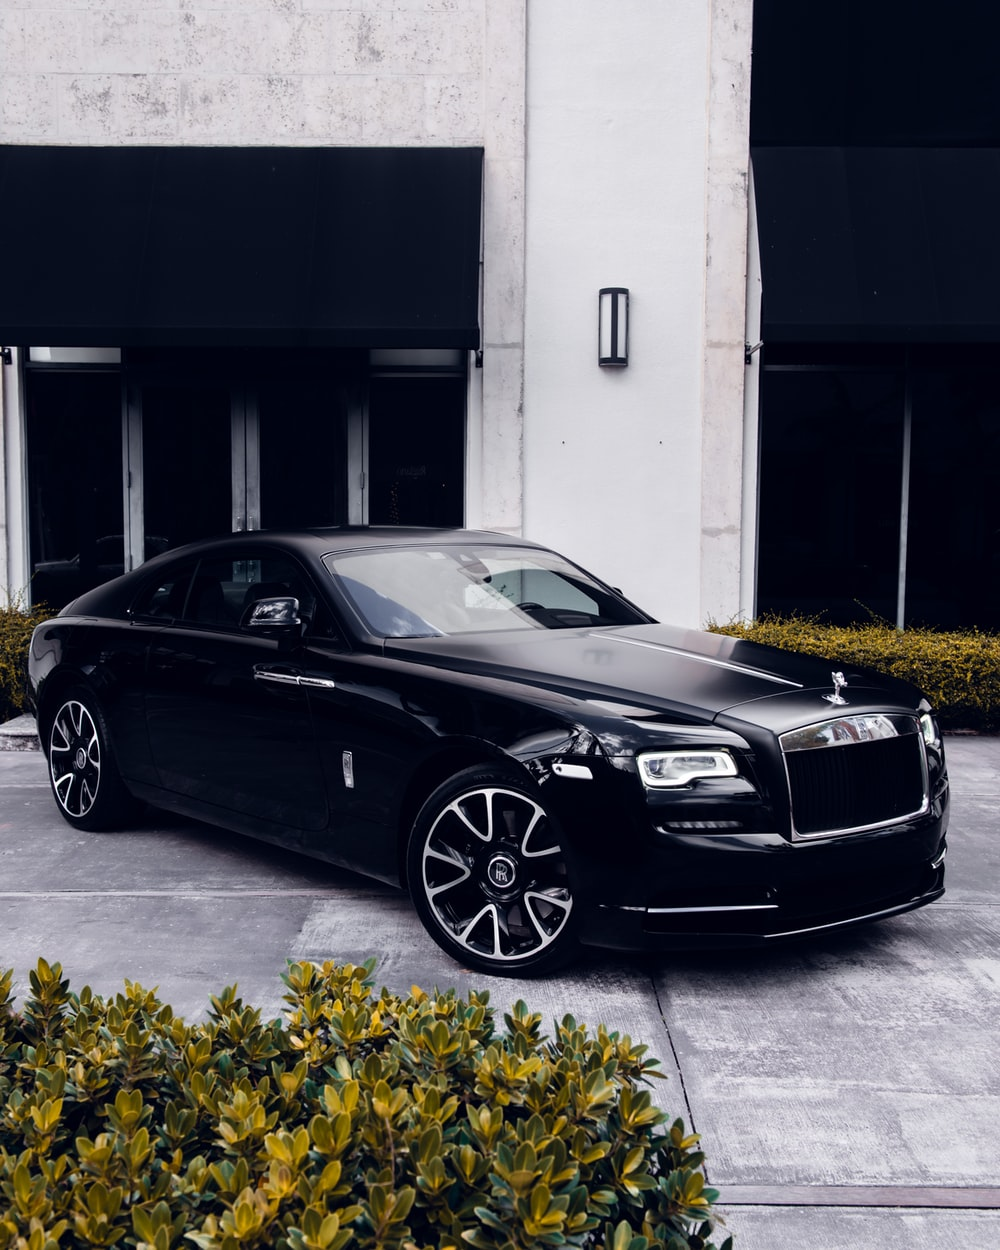 black coupe parked near building front